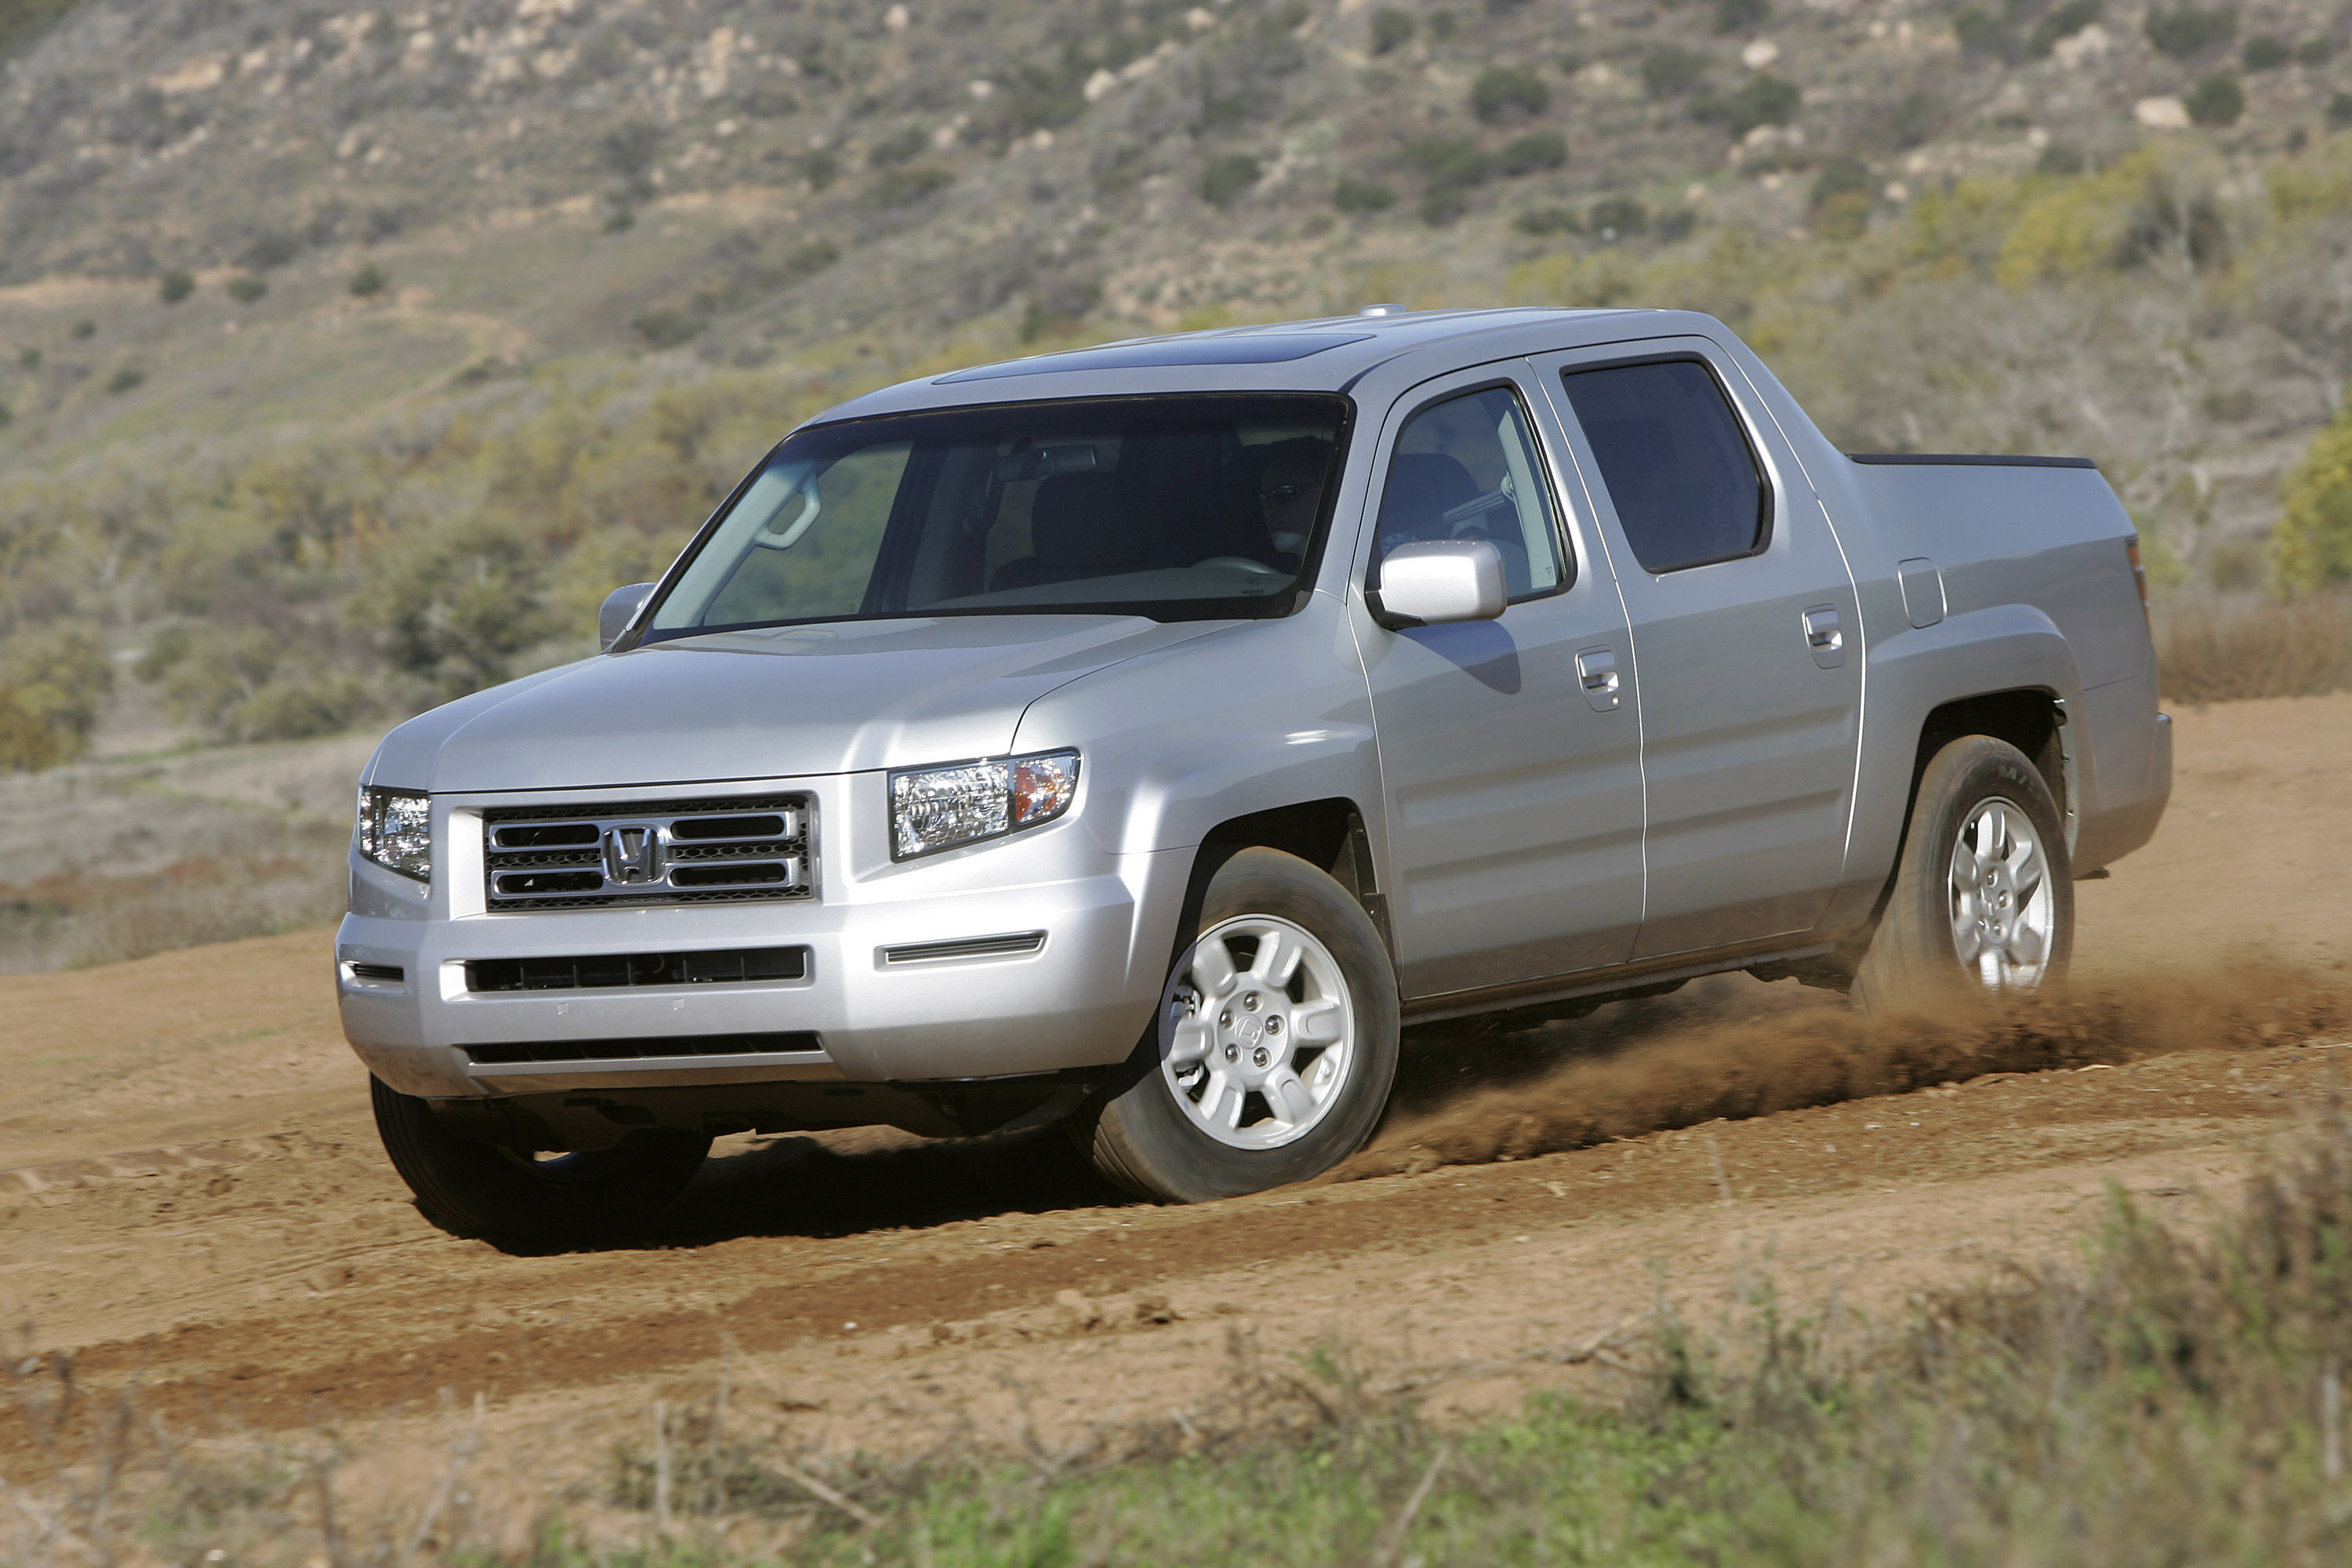 2006 Honda Ridgeline Rtl Hd Pictures Boat Towing With Thumbnail Photo 71898